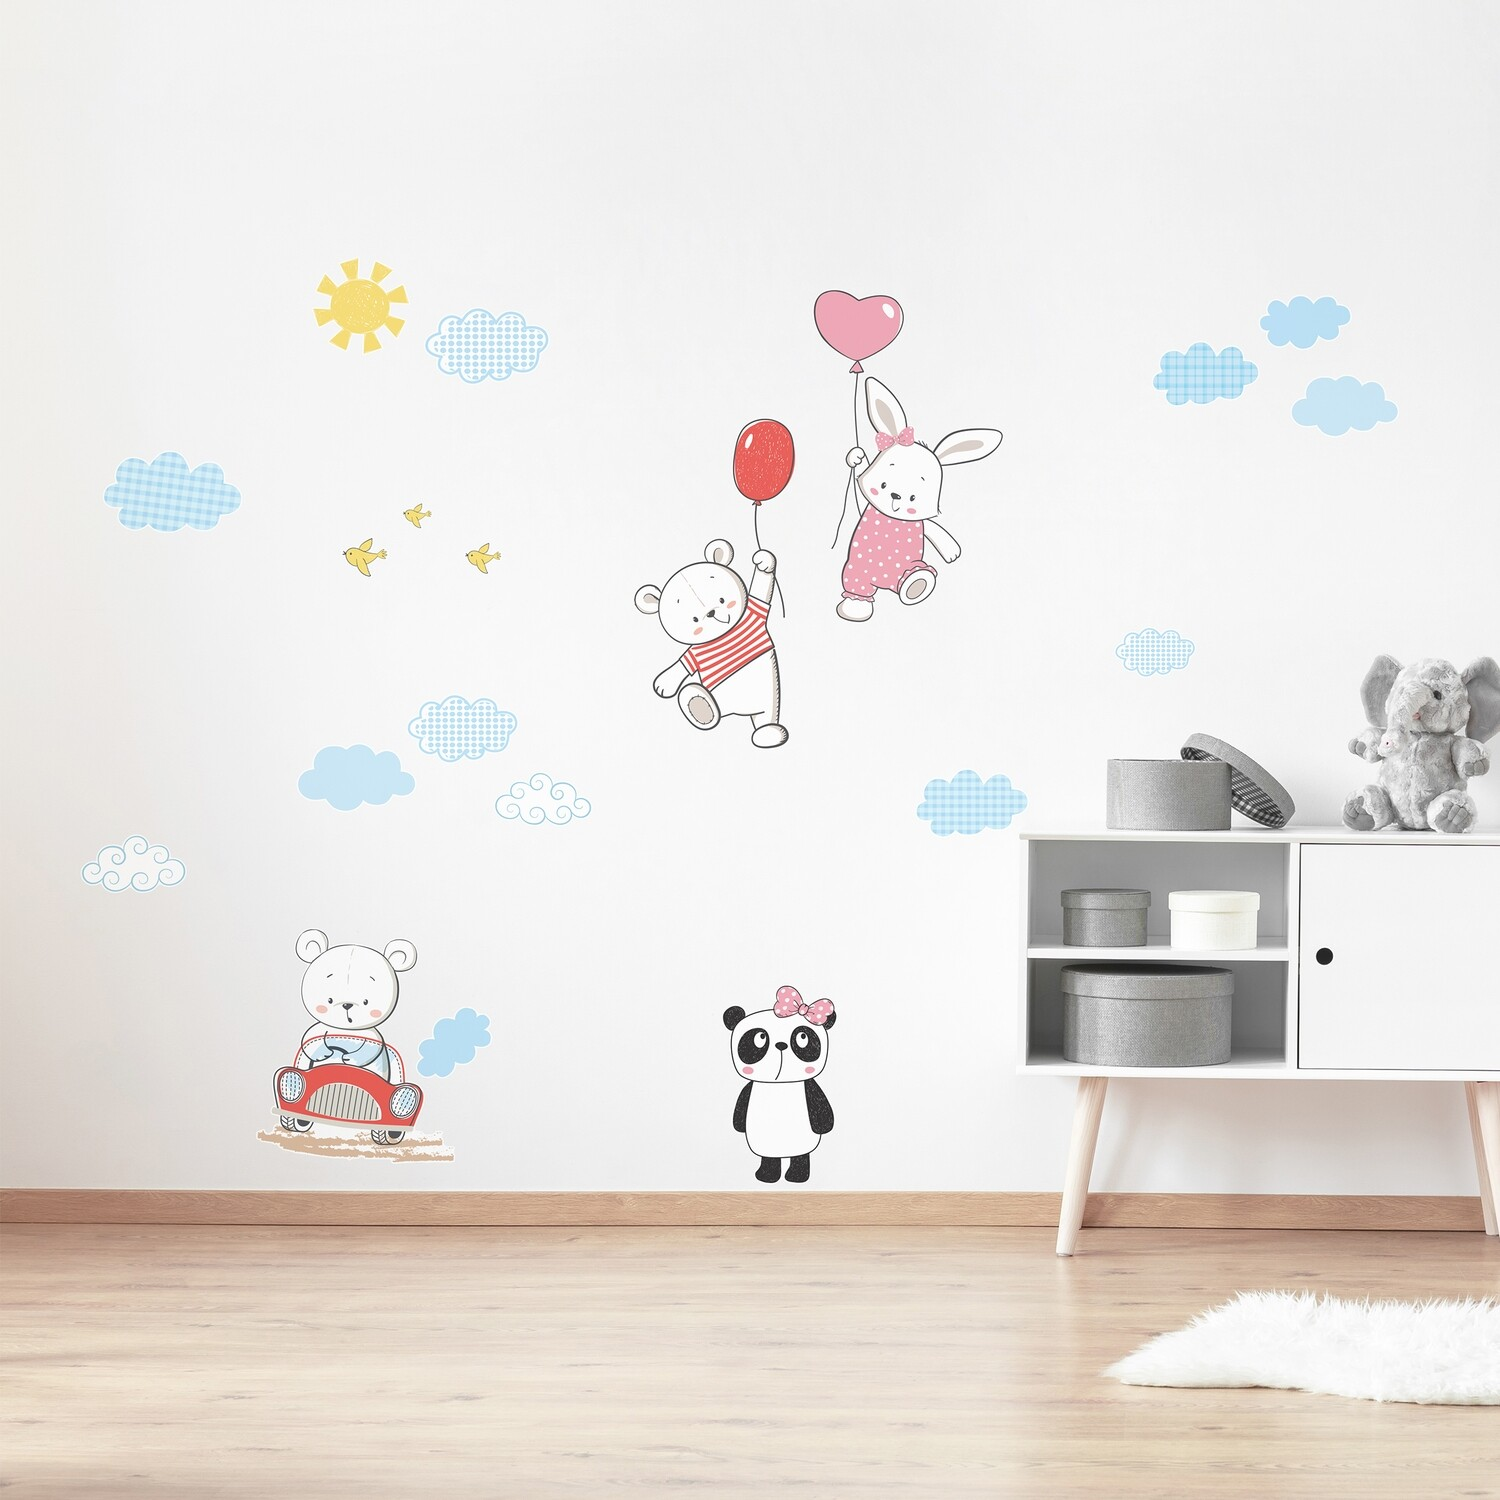 Crearreda 18307 - Funny Bears Adhesive Wall Sticker